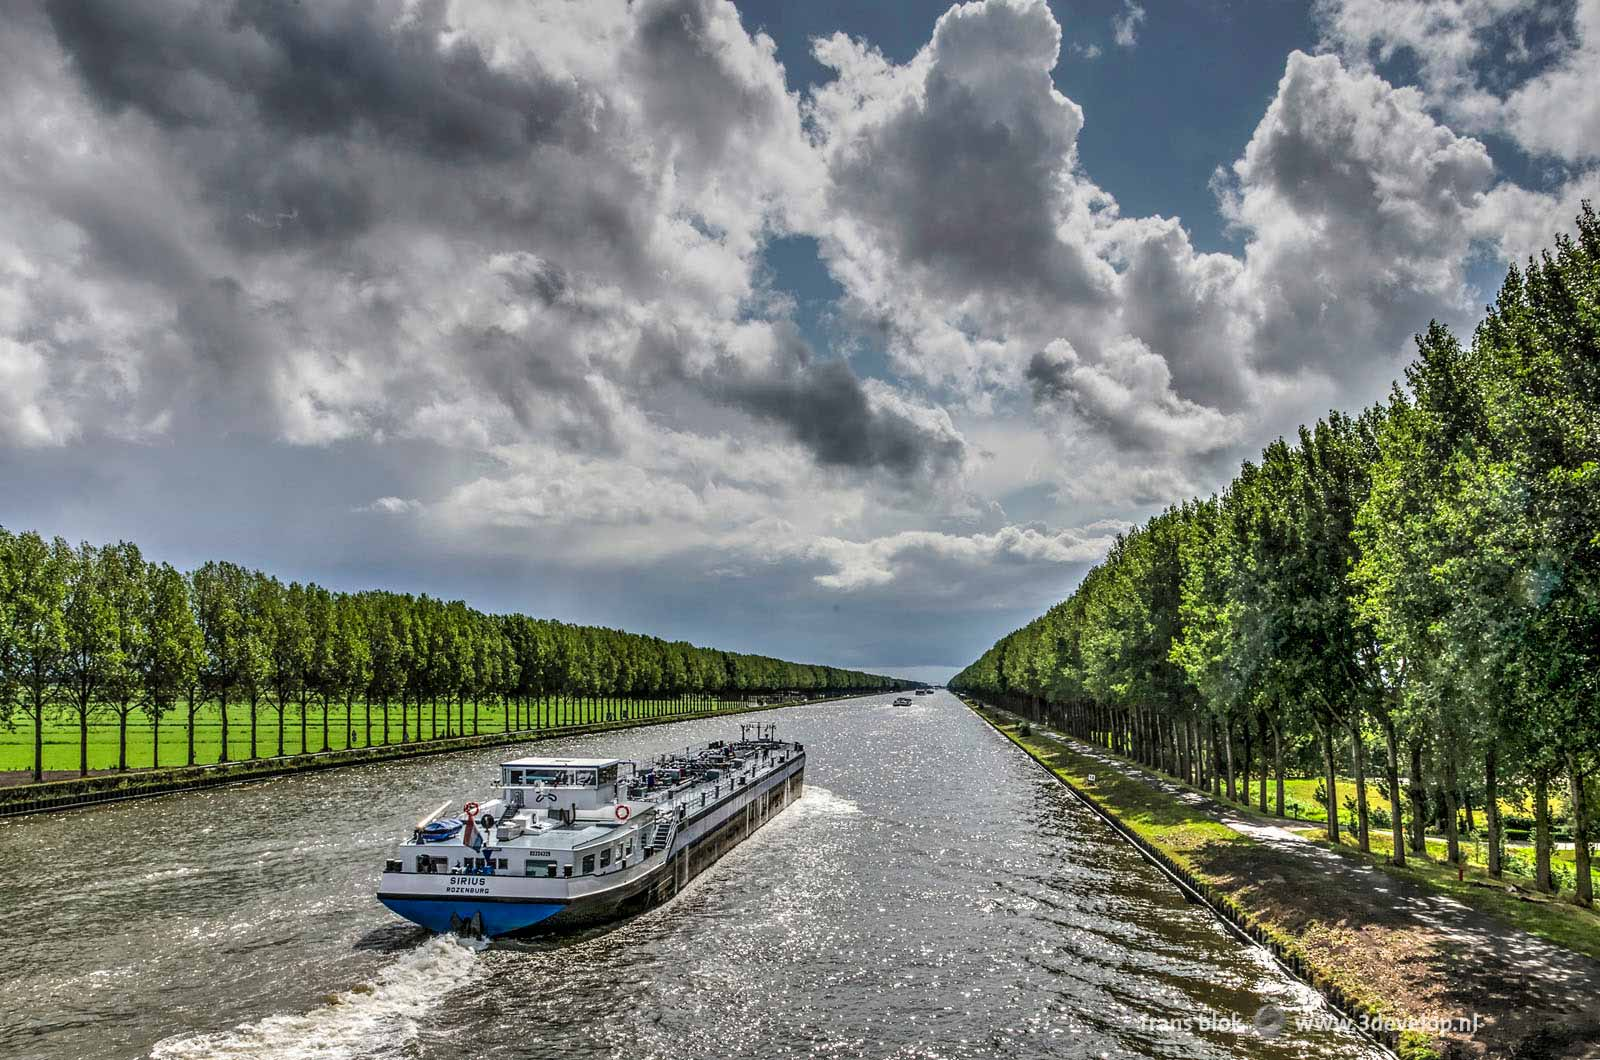 Perspective image of an inland barge on the Amsterdam-Rhine Canal with rows of trees on both sides under a dramatic sky